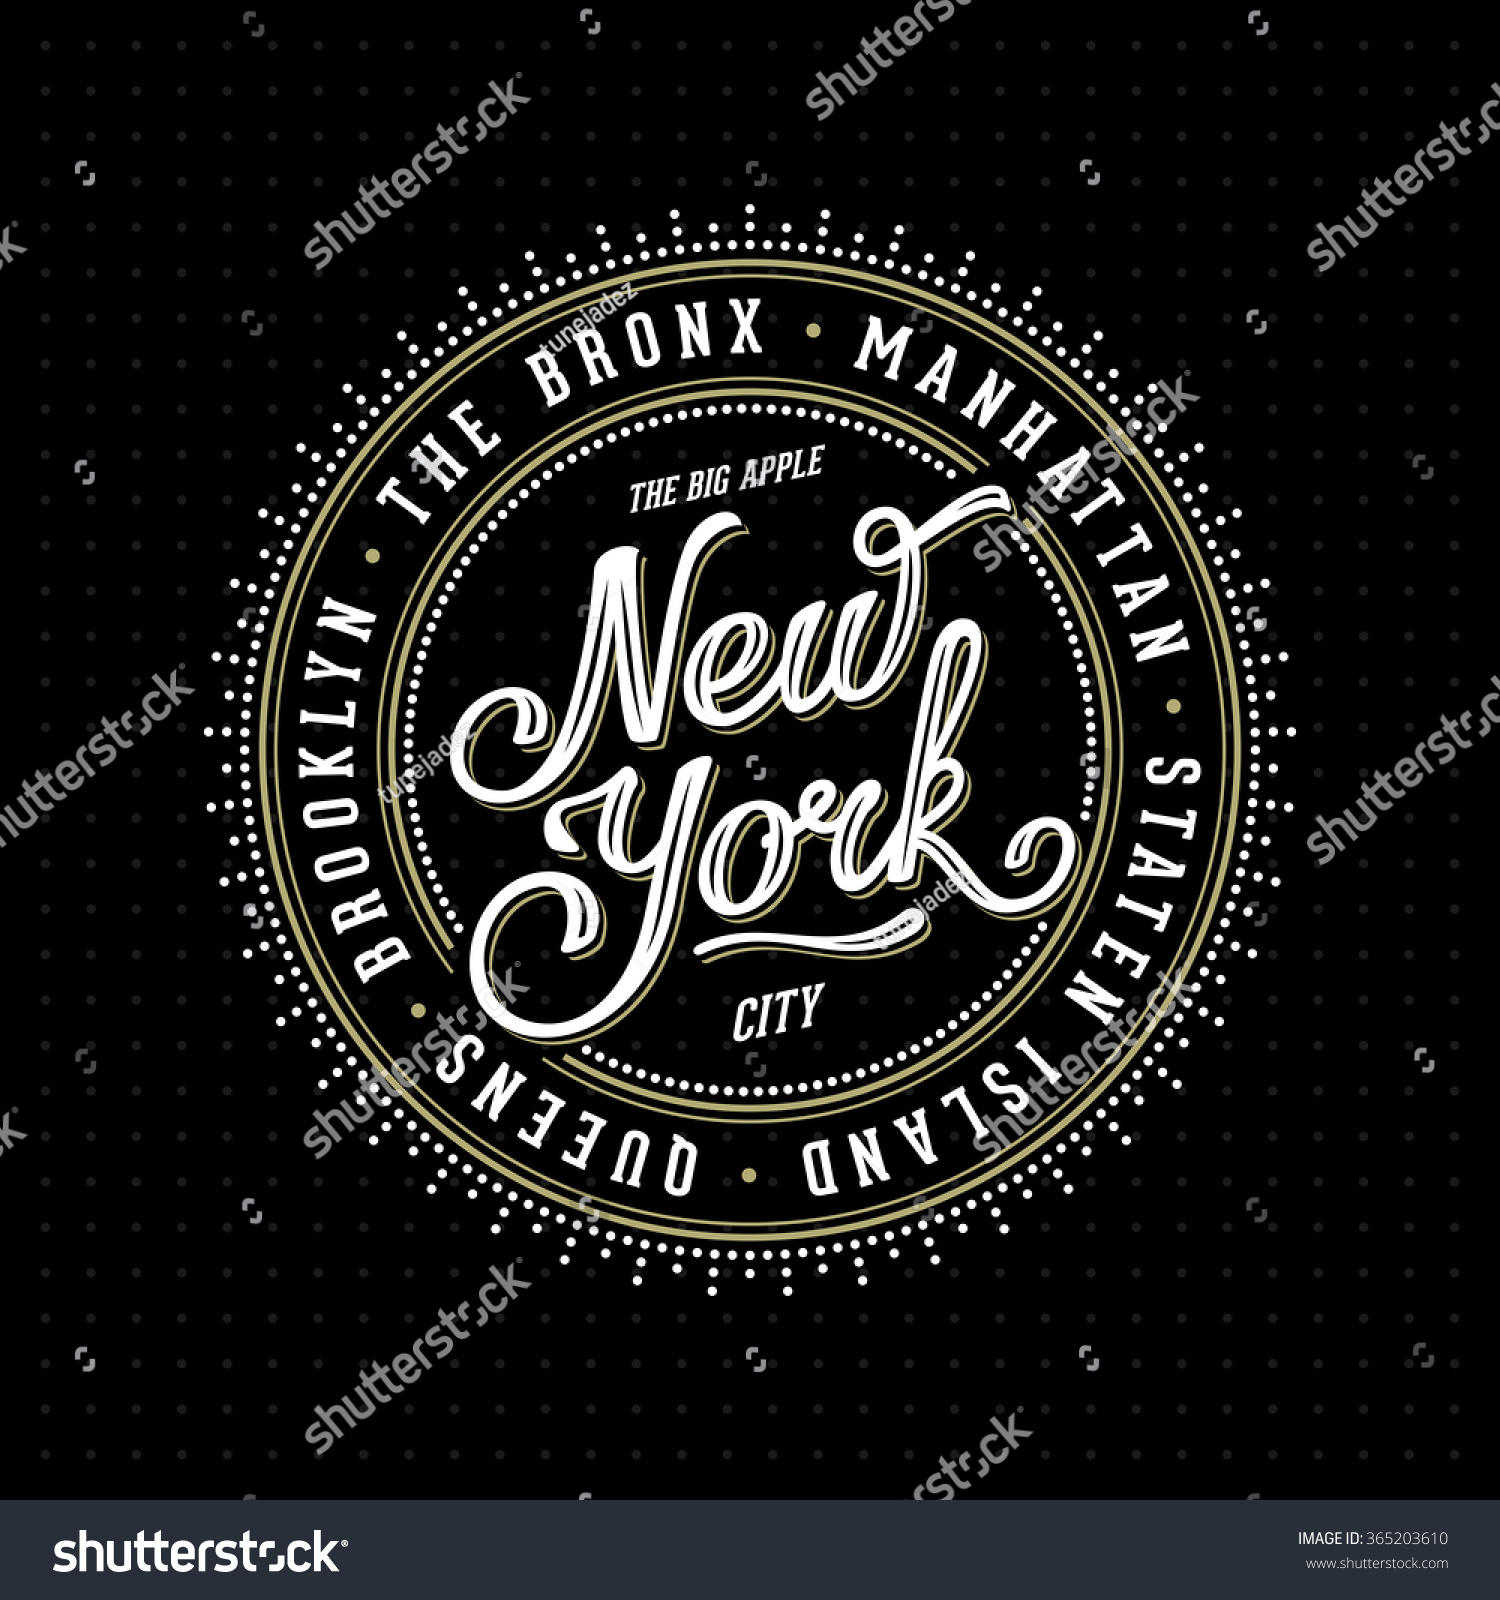 T shirt design queens ny - Vintage Hipster Frame With Lettering New York City Brooklyn Manhattan Queens